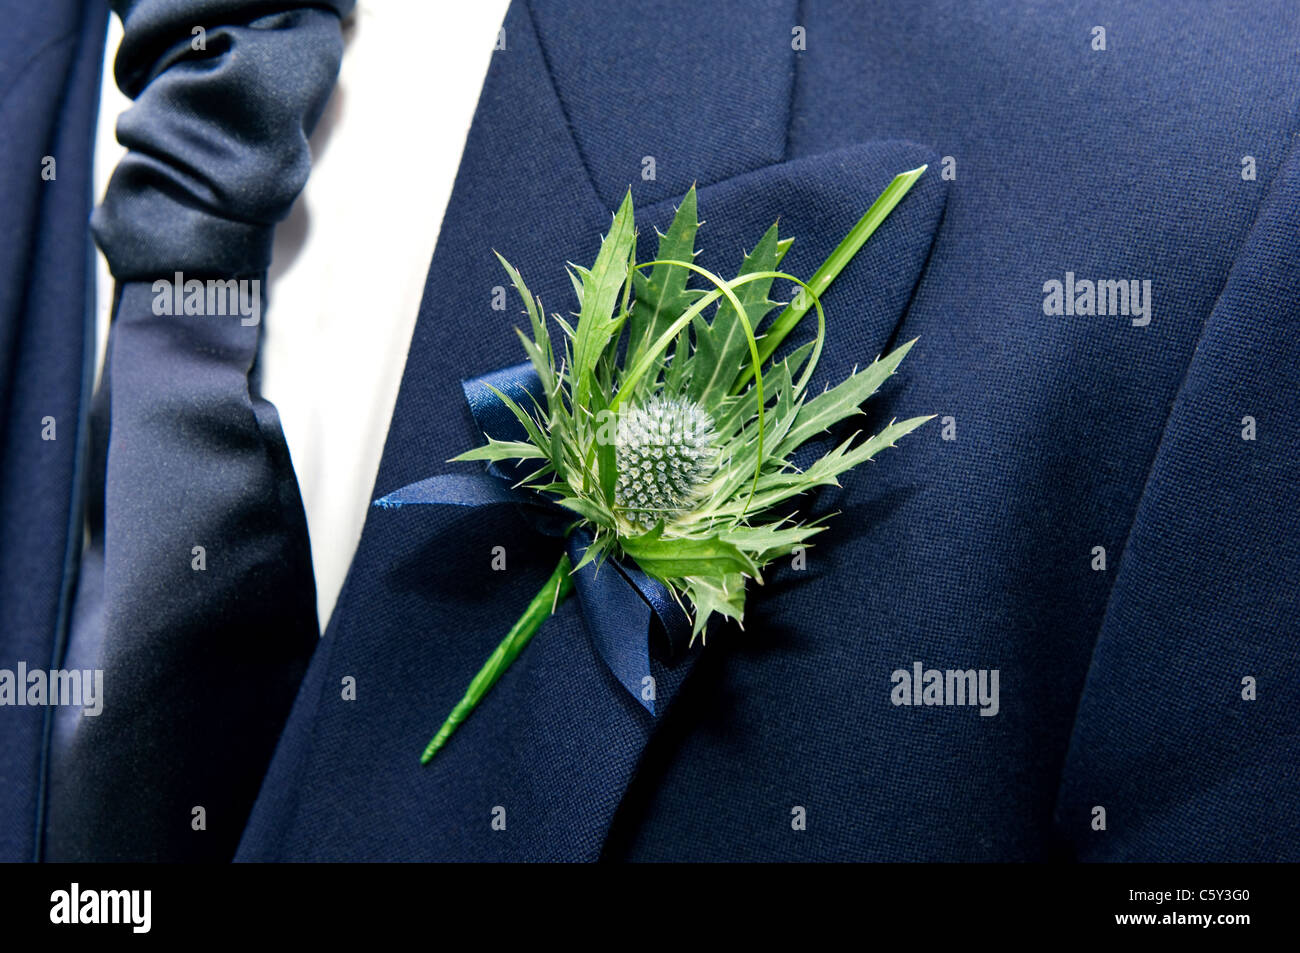 The thistle, national emblem of Scotland, worn as a flower buttonhole on lapel of mans suit jacket - Stock Image